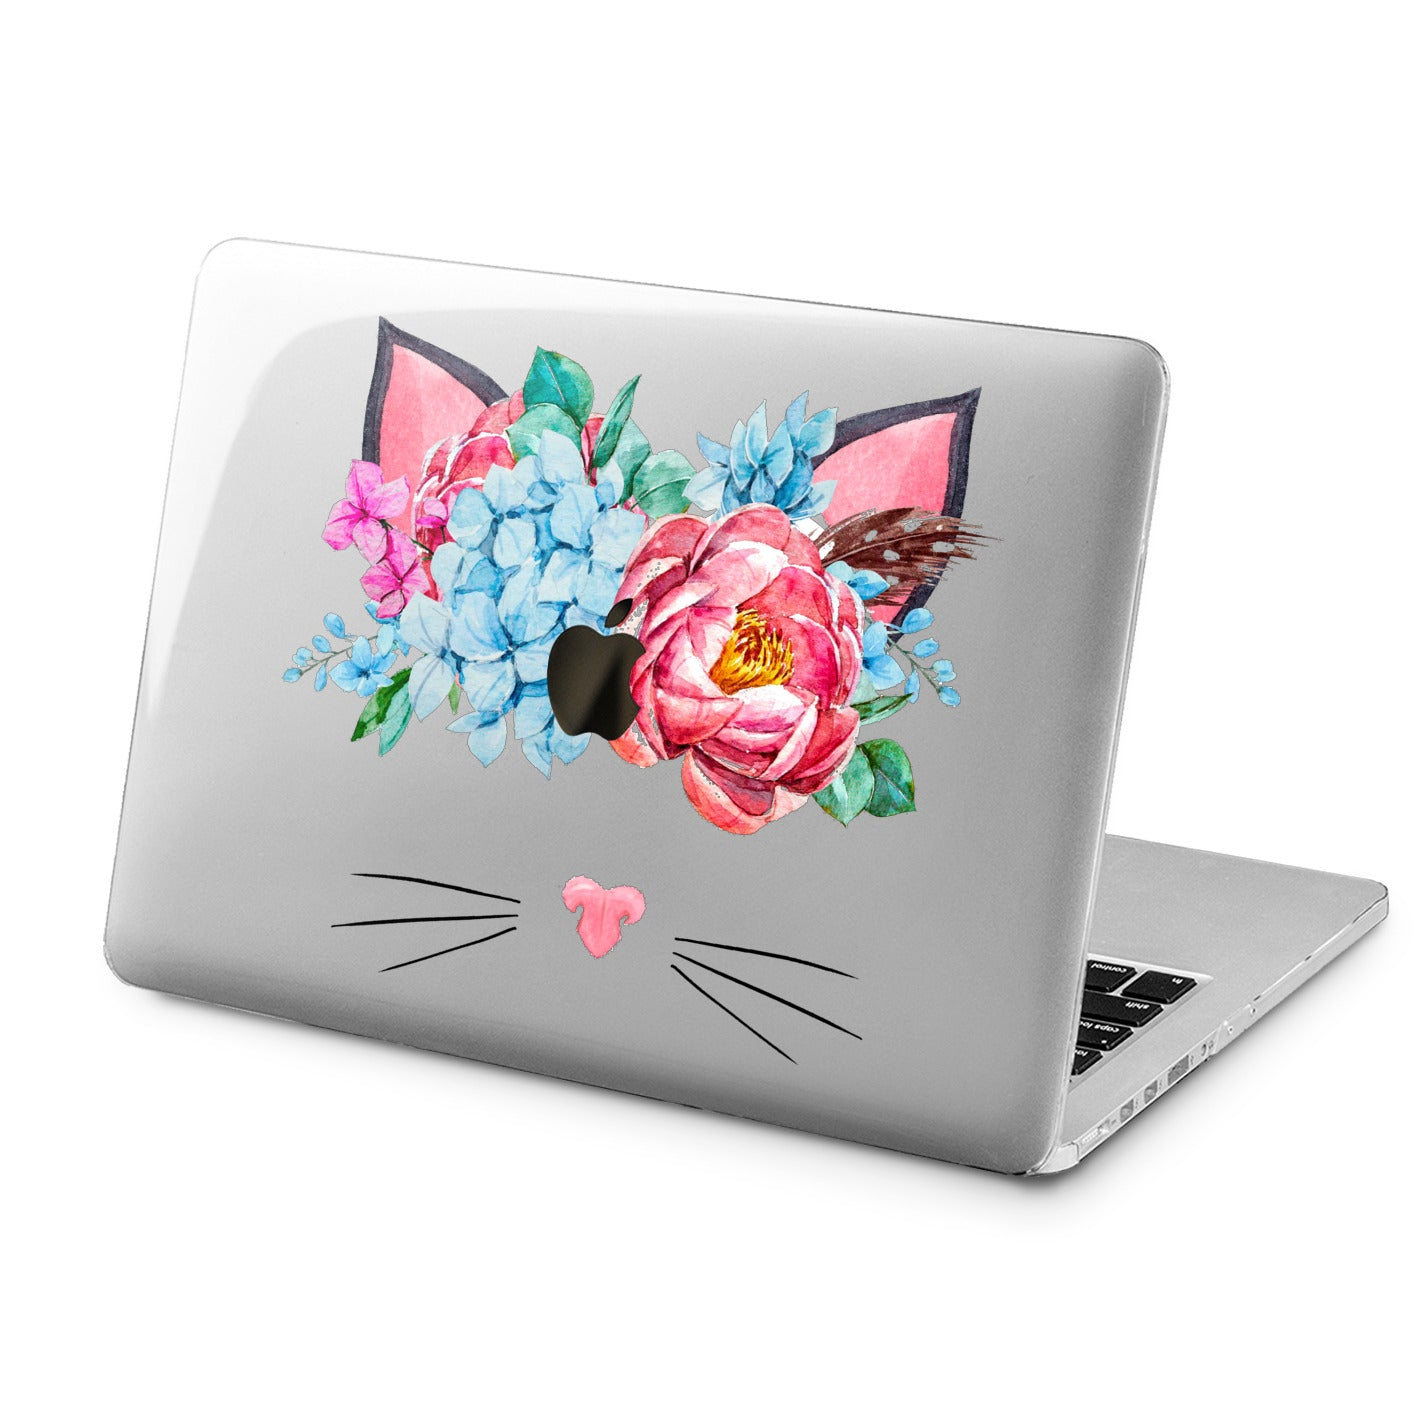 Lex Altern Lex Altern Floral Cat Case for your Laptop Apple Macbook.